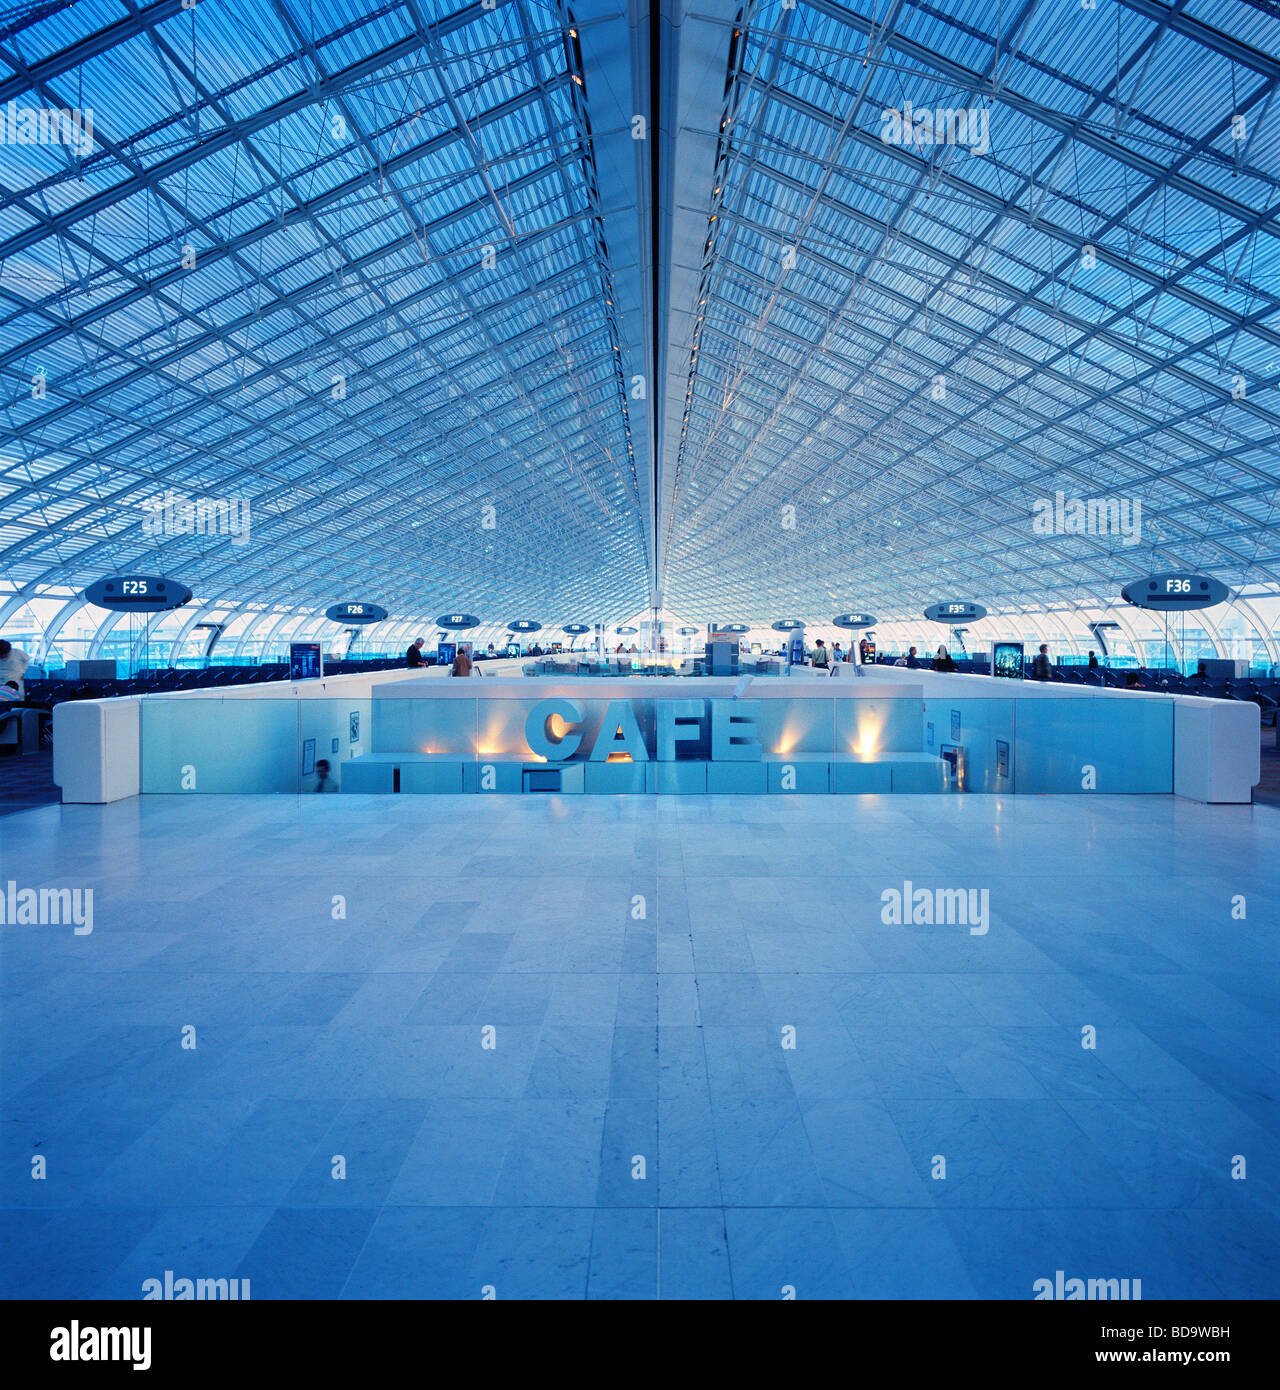 french airport terminal photos french airport terminal images alamy. Black Bedroom Furniture Sets. Home Design Ideas